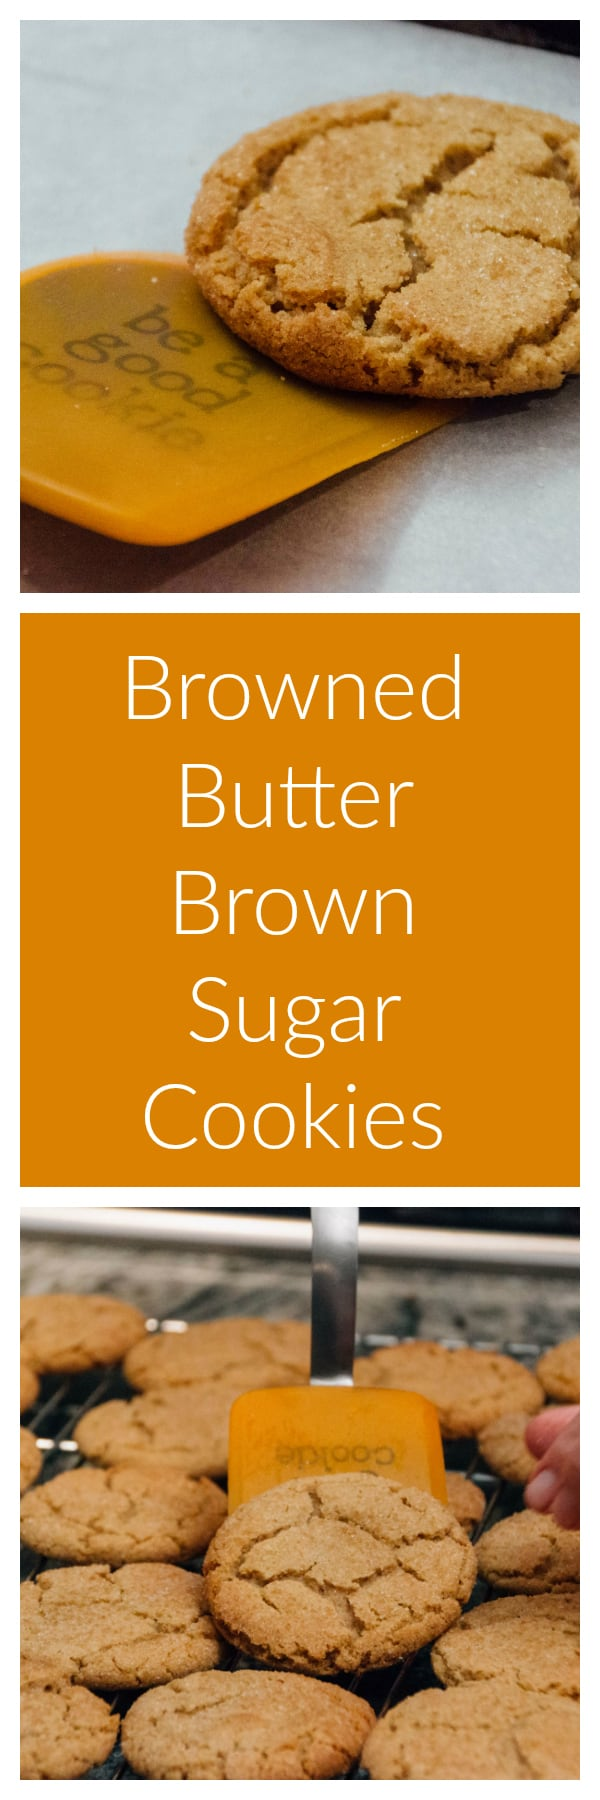 Browned Butter Brown Sugar Cookies are the best cookie I've ever had ...